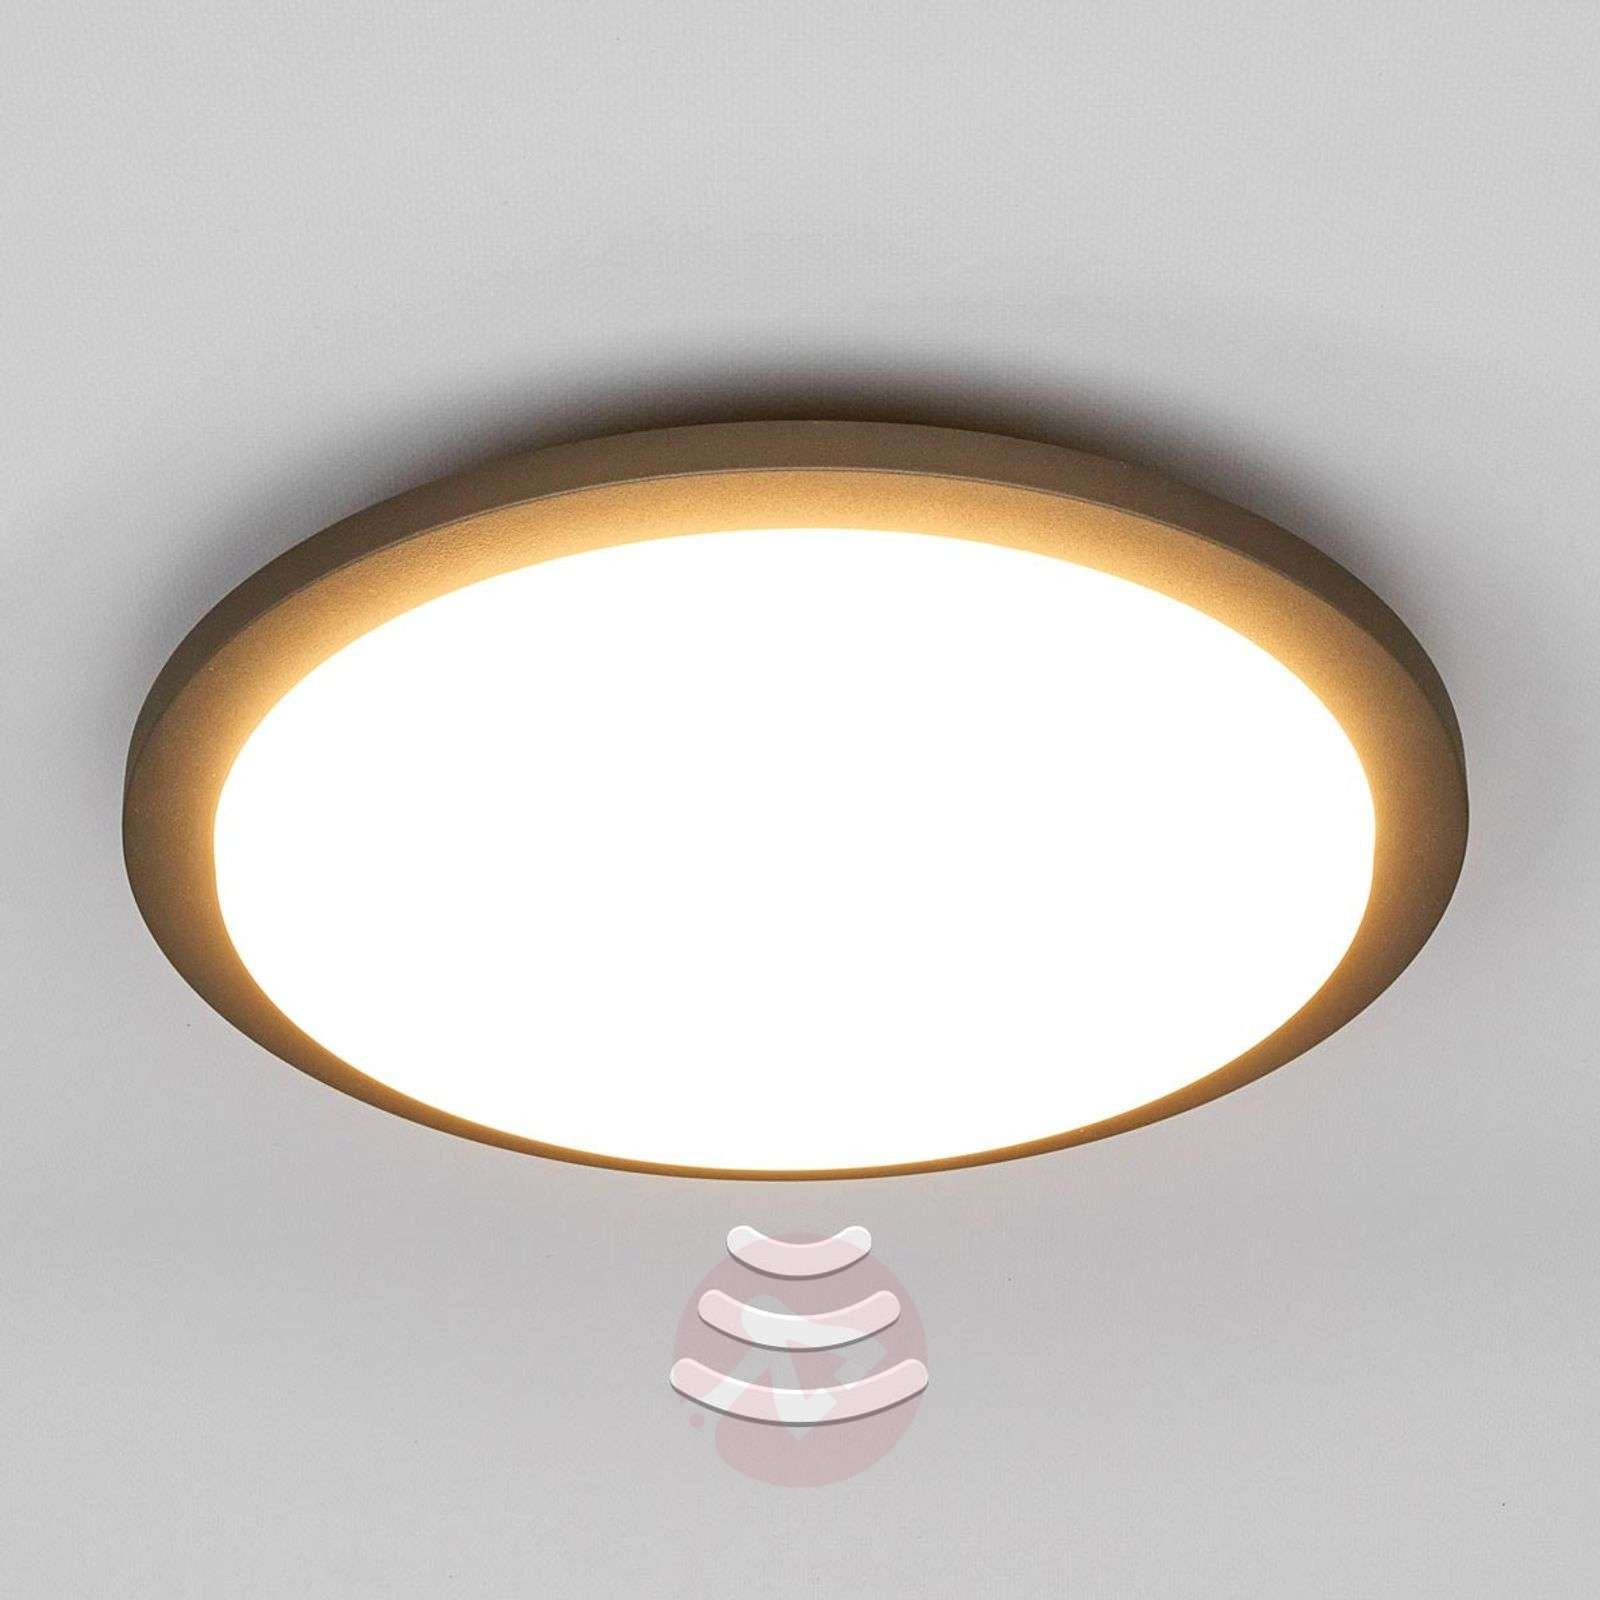 Benton LED outdoor ceiling light with sensor-9619047-013